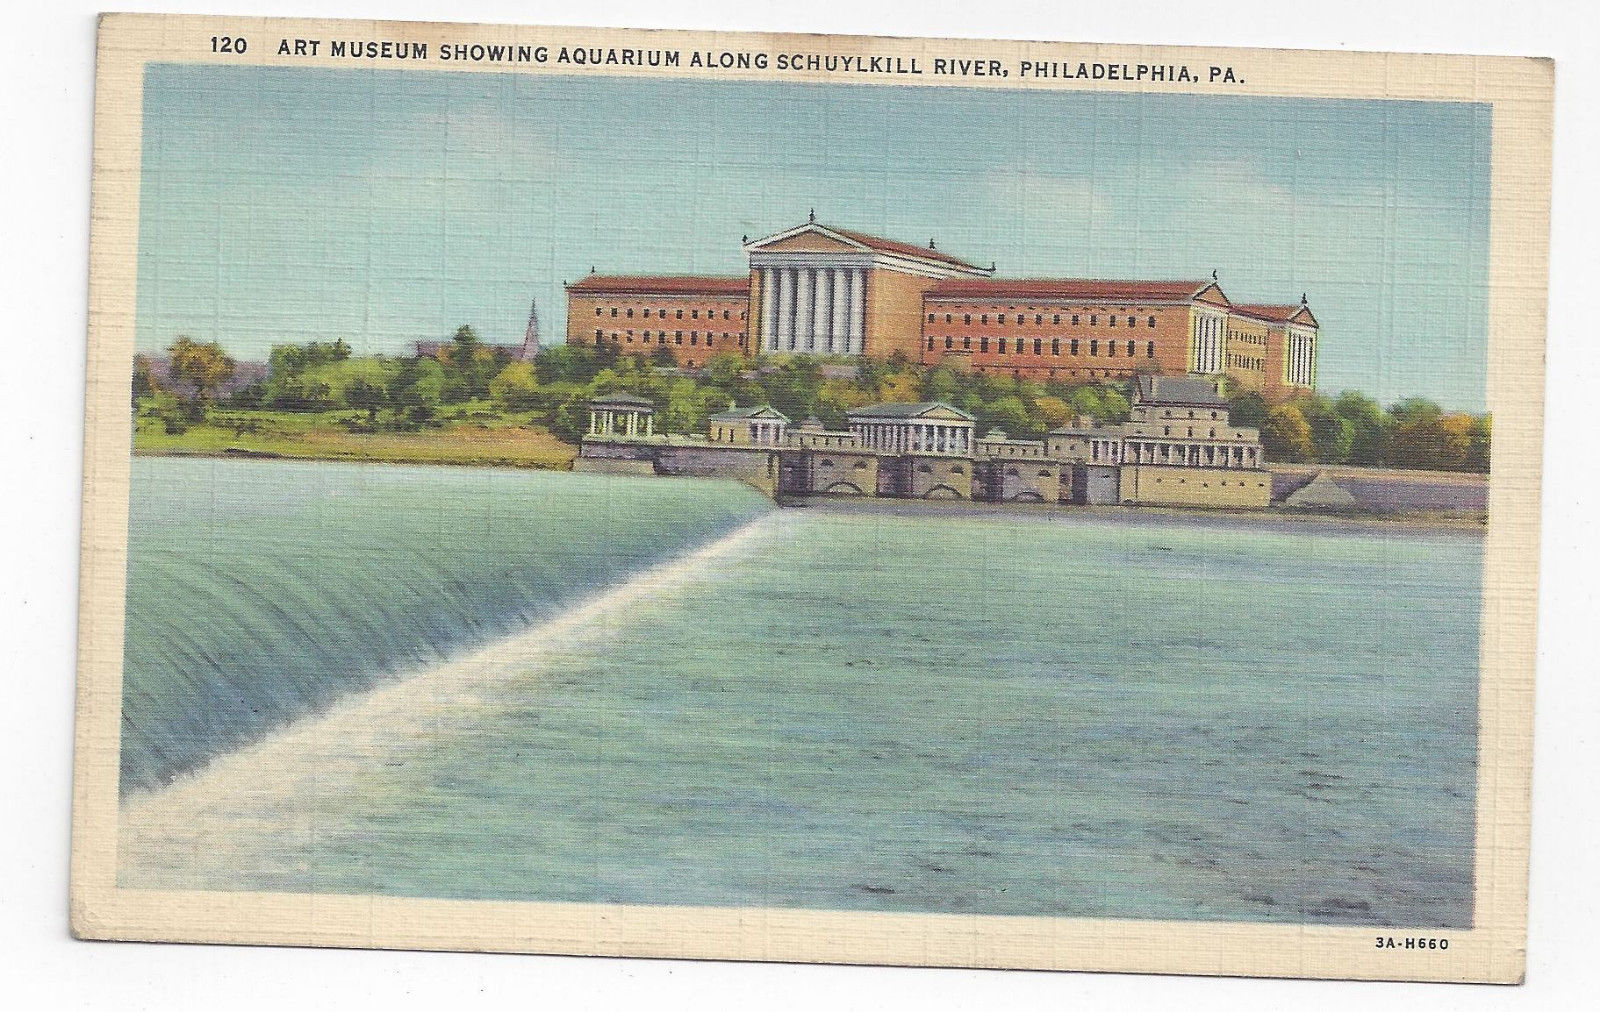 PA Philadelphia Art Museum Aquarium Water Works Vintage 1933 Linen Postcard